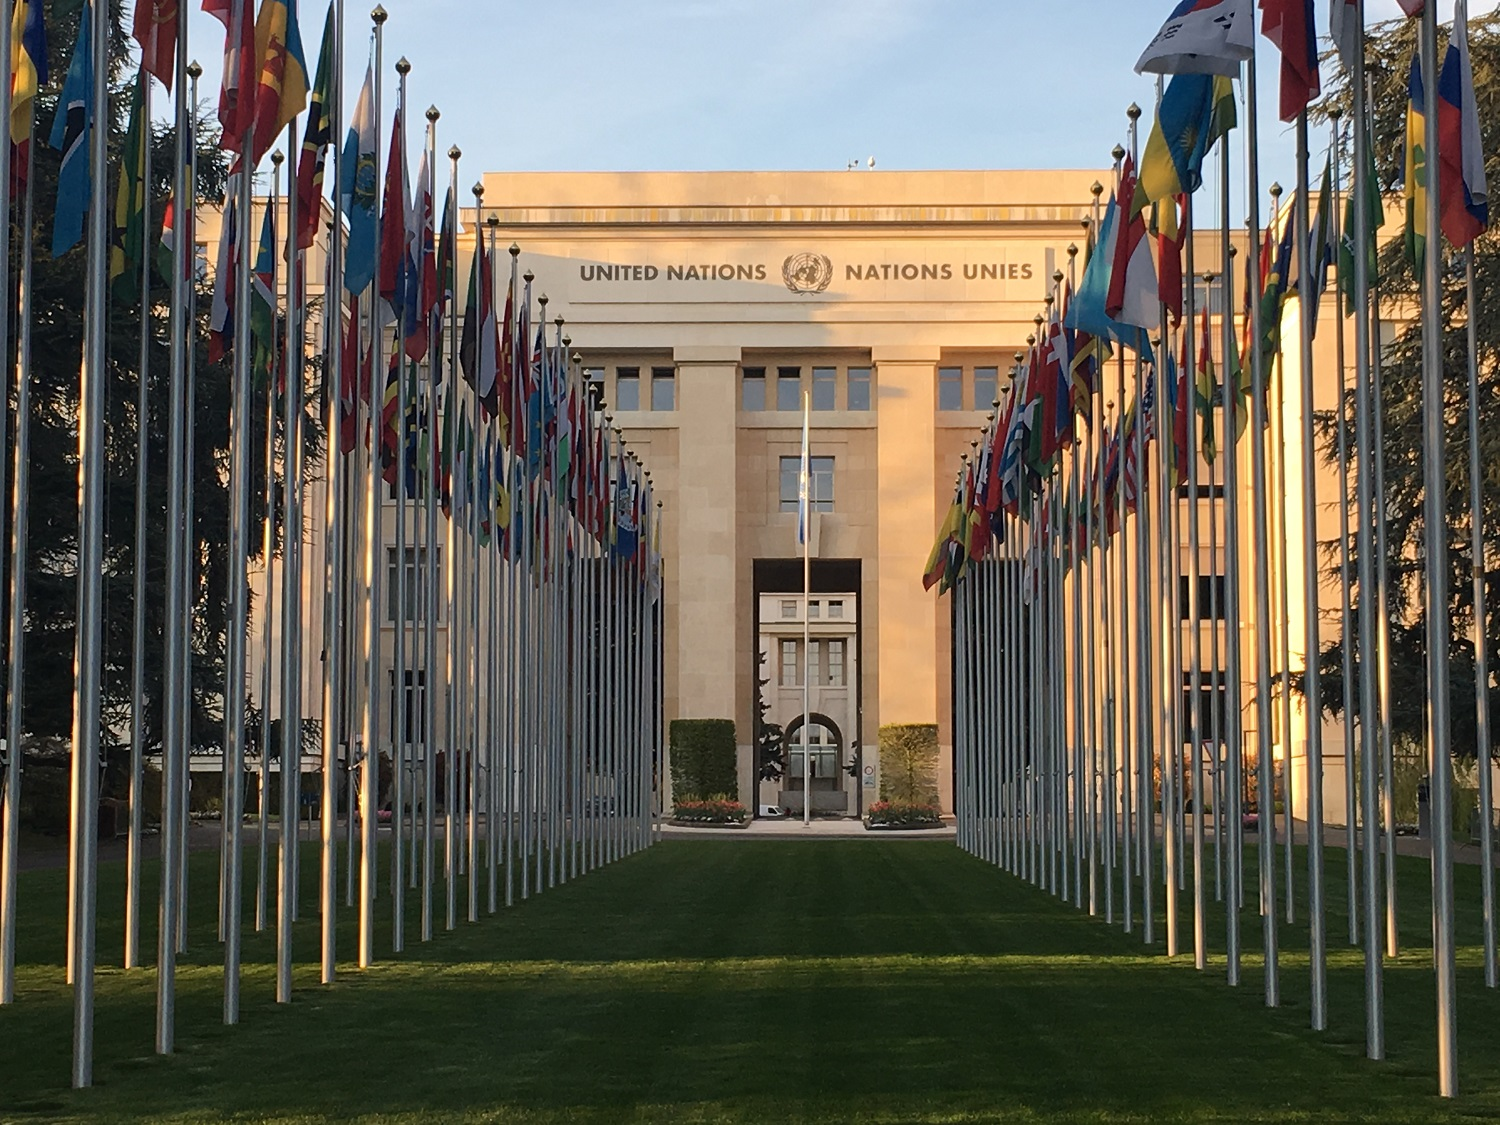 United Nations Geneva Flags